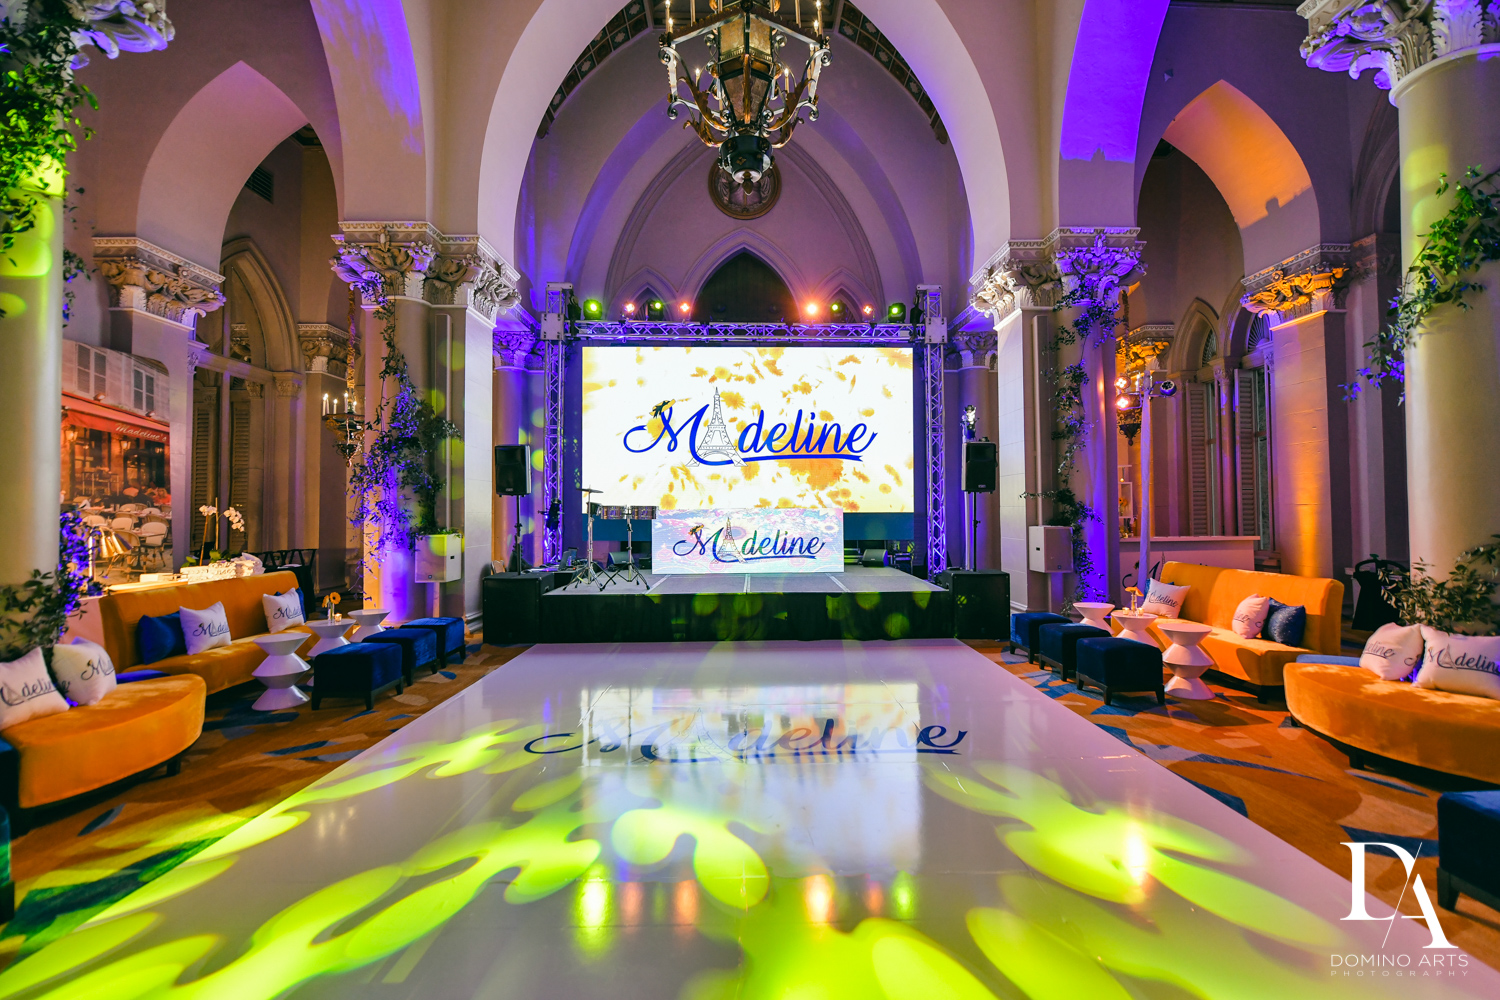 dance floor at Madeline in Paris theme Bat Mitzvah at Boca Raton Resort and Club by Domino Arts Photography